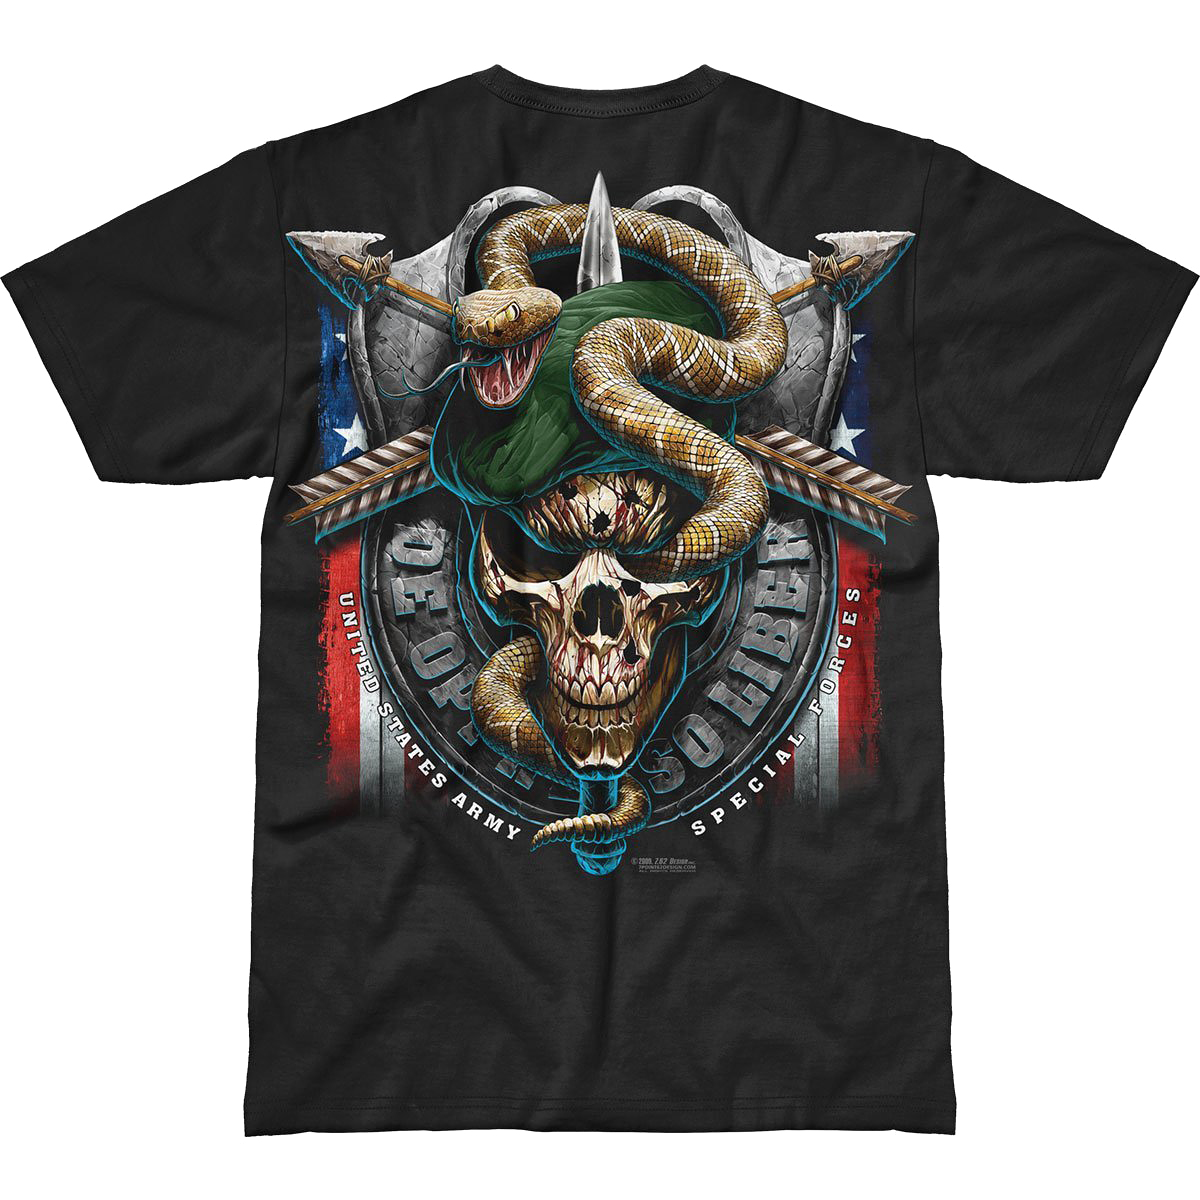 Design Army Special Forces Green Beret Battlespace T